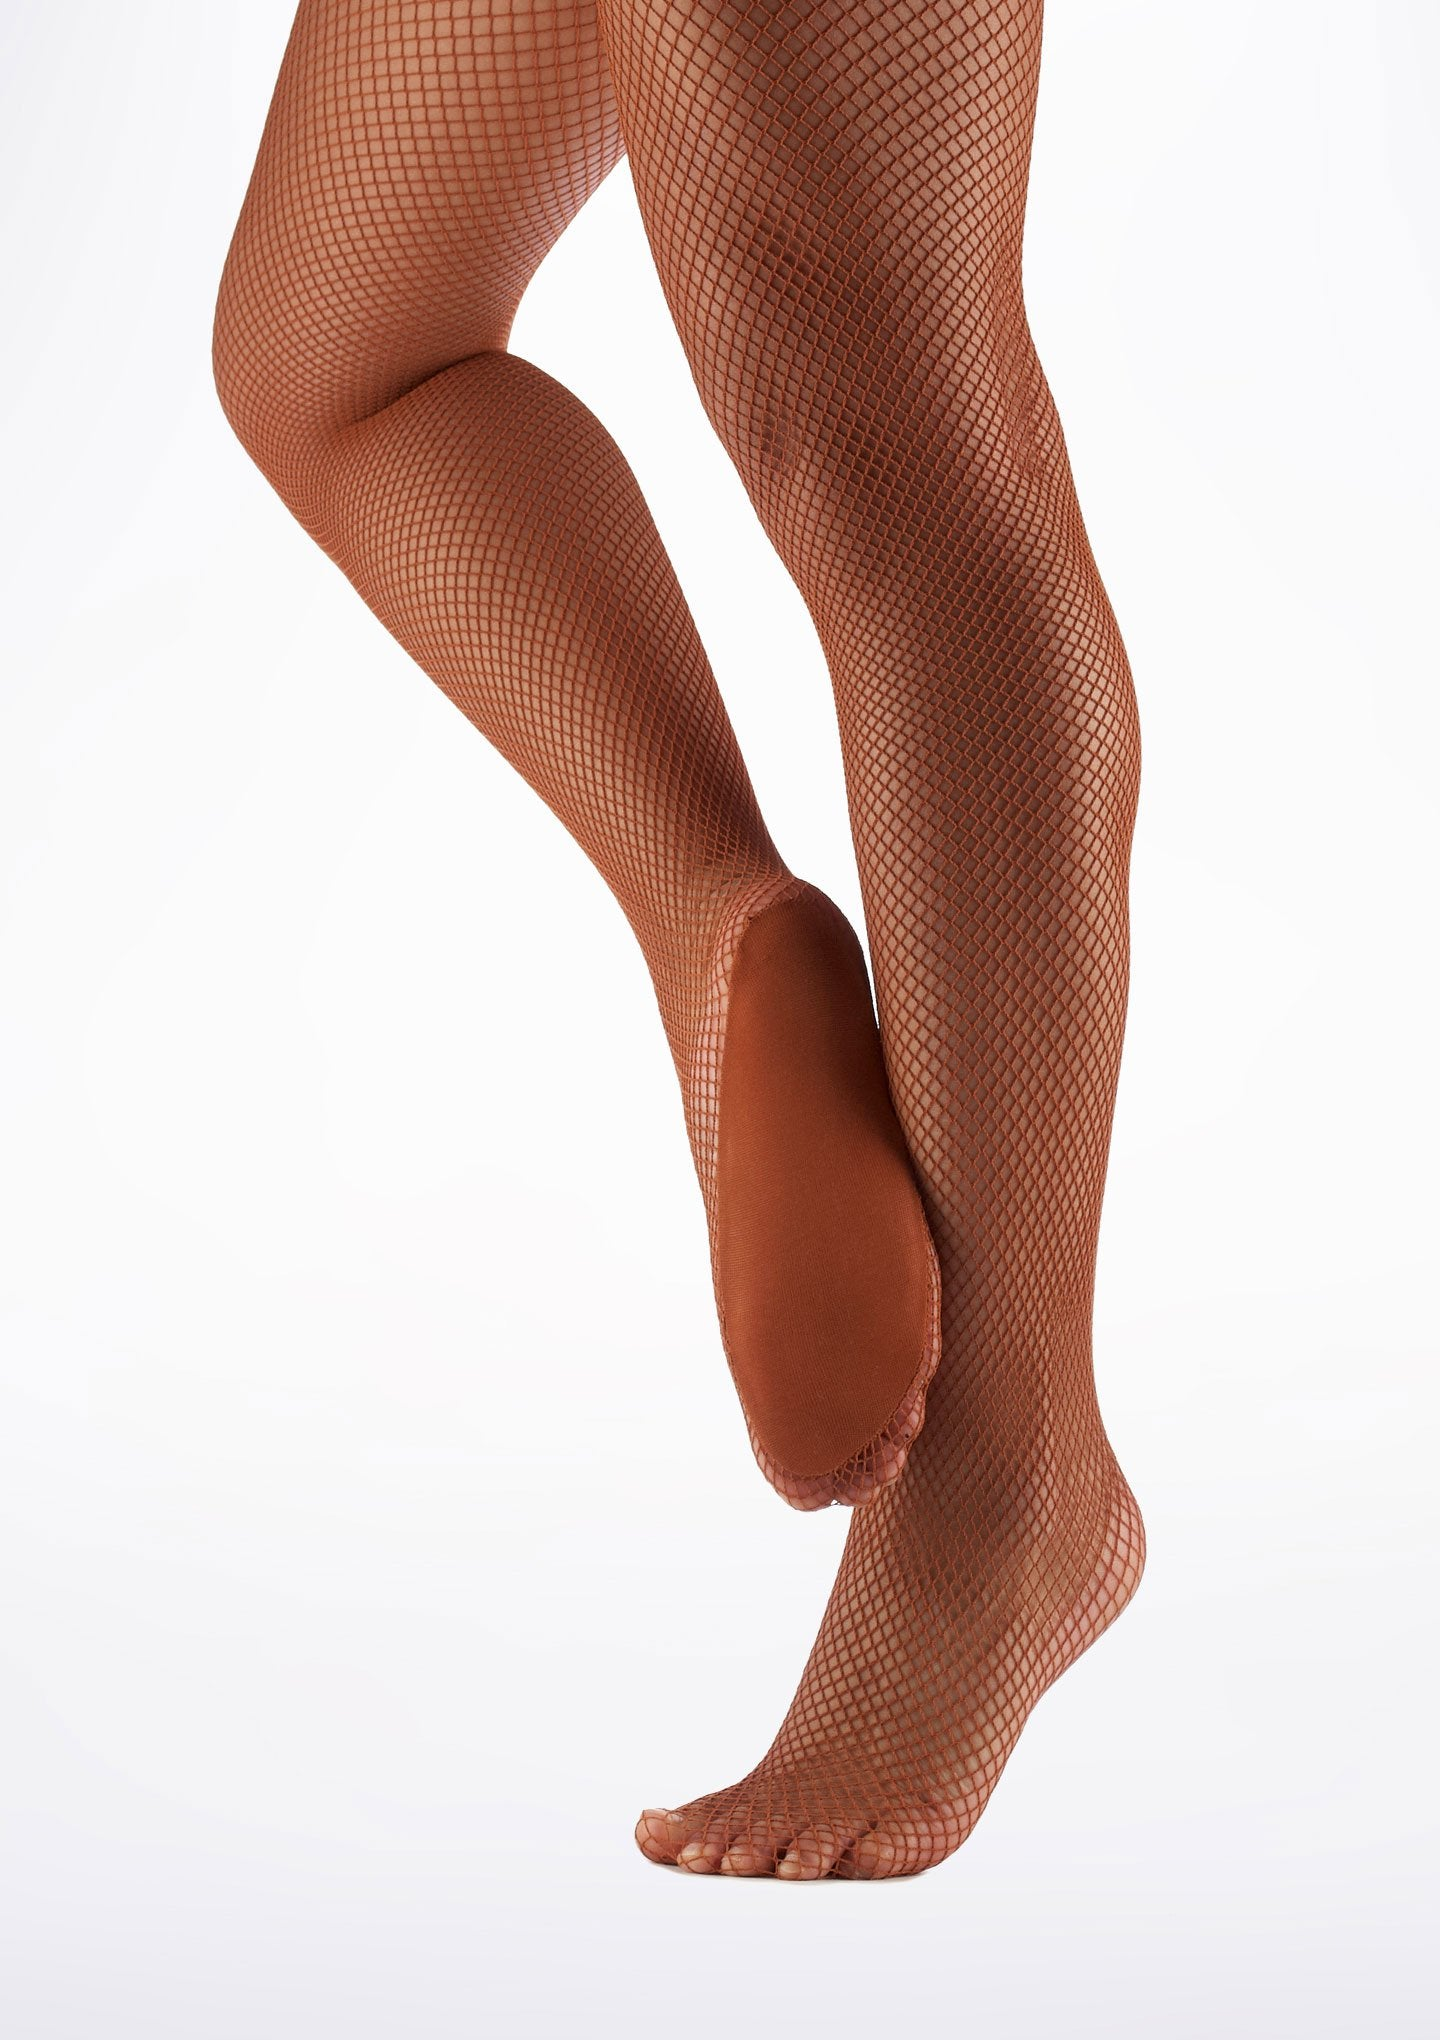 Collants de Danse Professionnelle